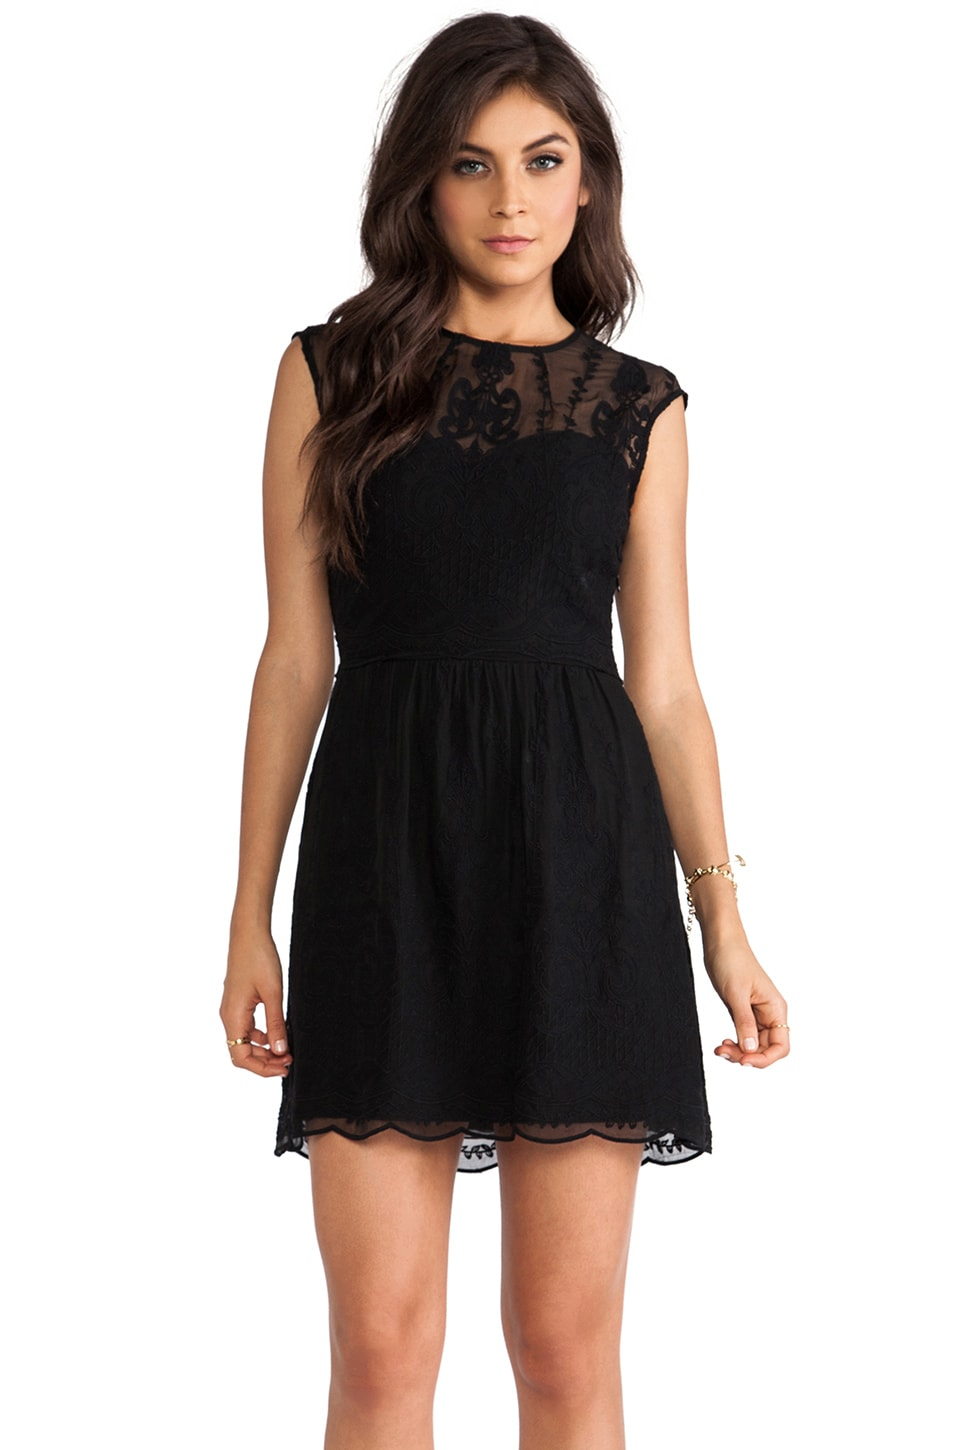 Dolce Vita Kloey Silk Embroidery Dress in Noir